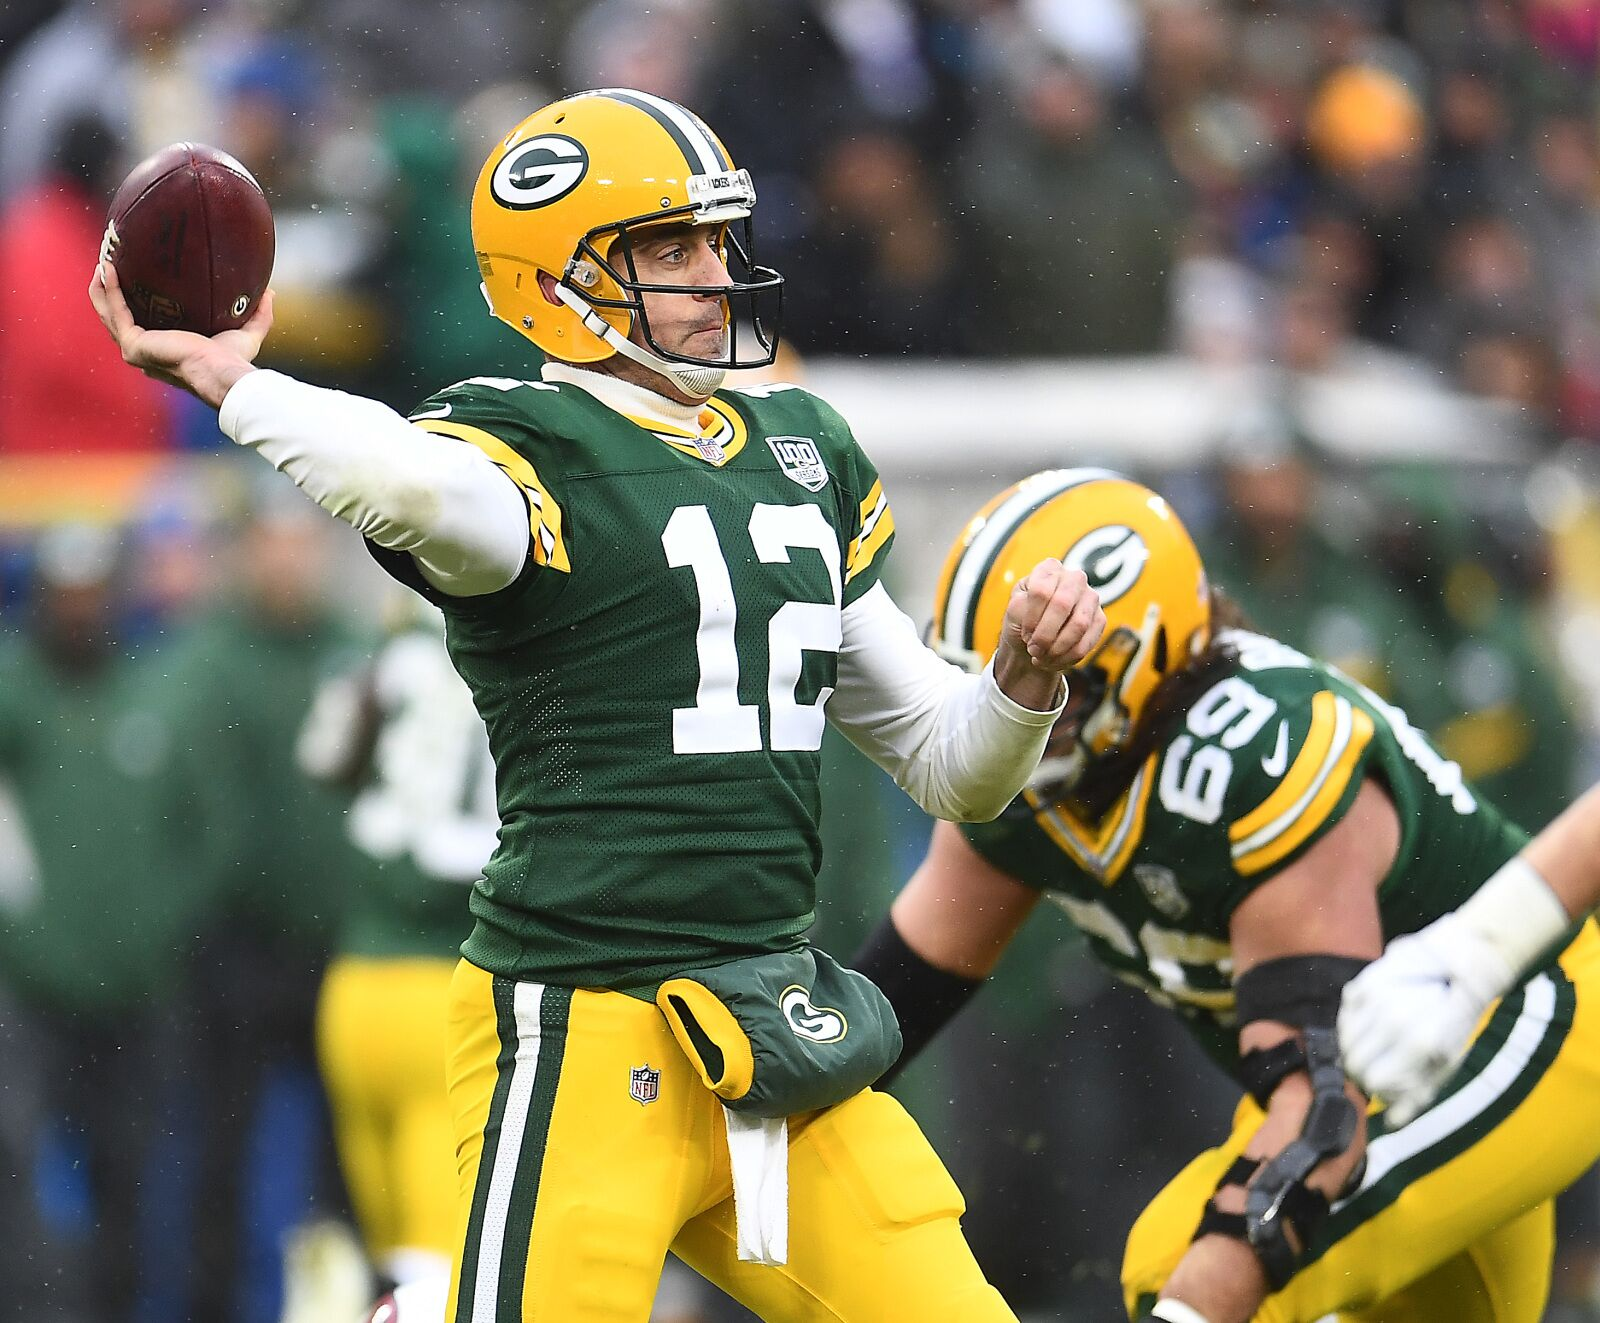 Packers: Three changes on offense we hope to see under Joe Philbin